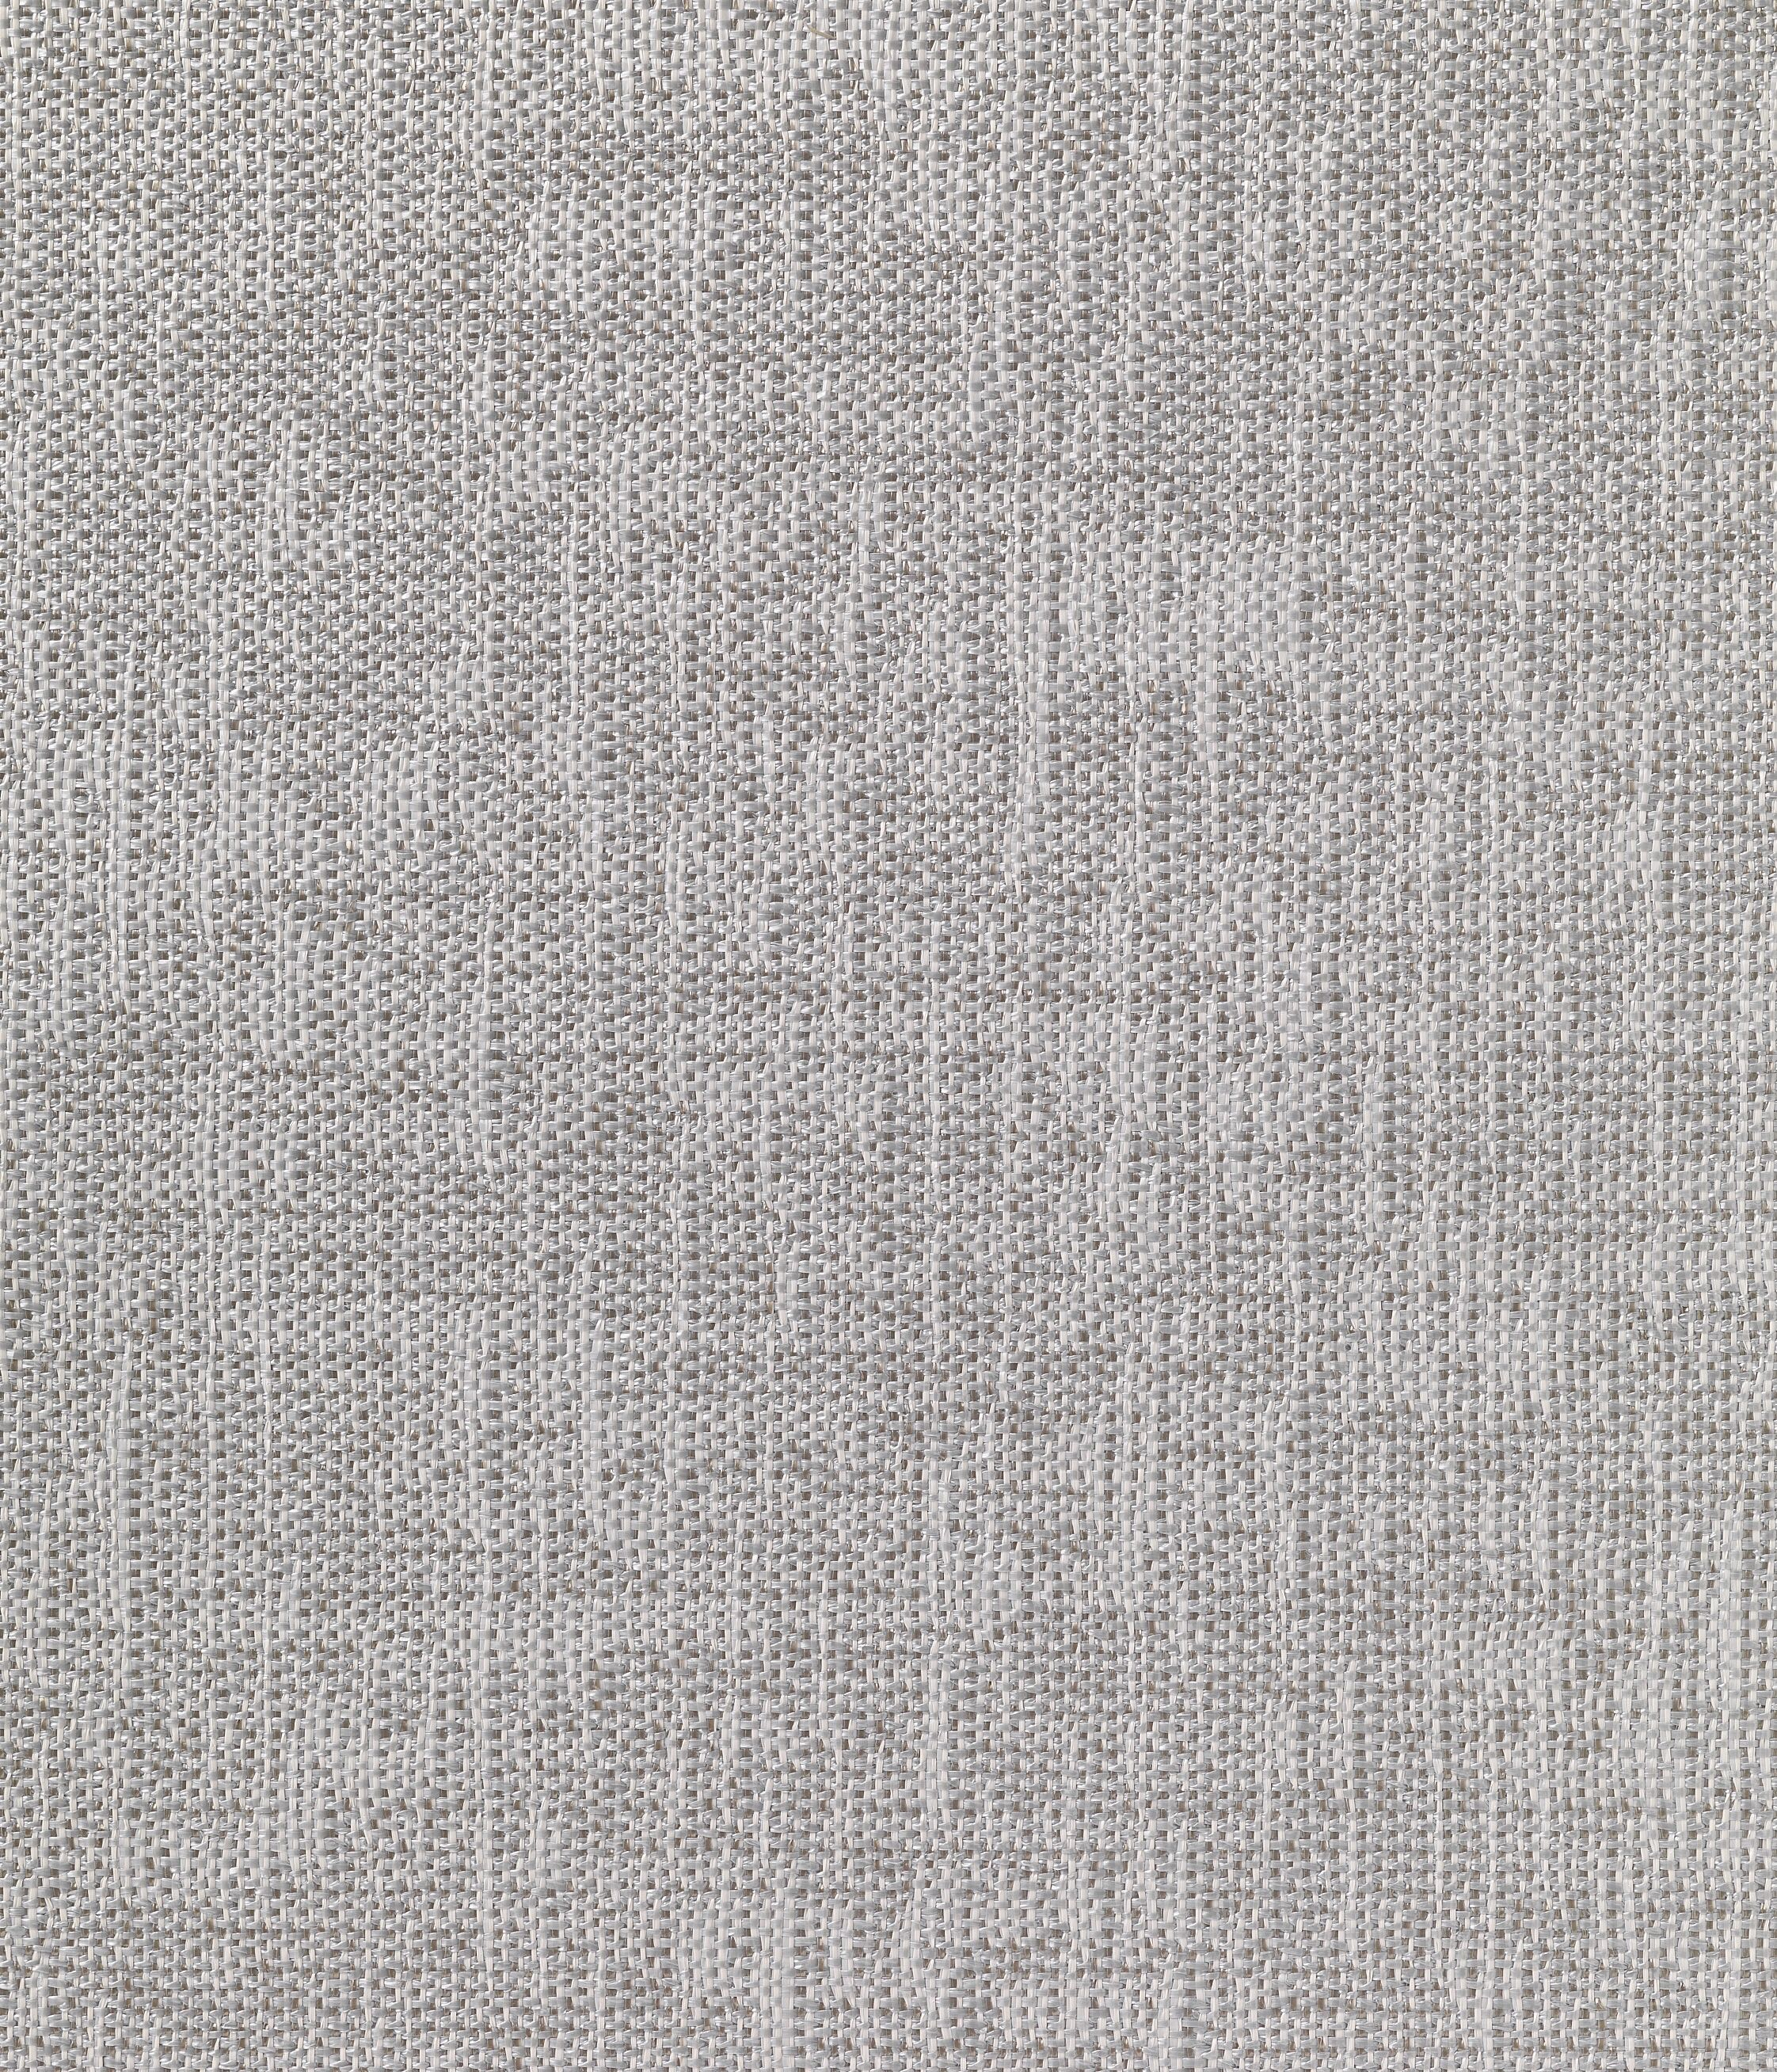 2547 09 Texture Fabric Wallpaper